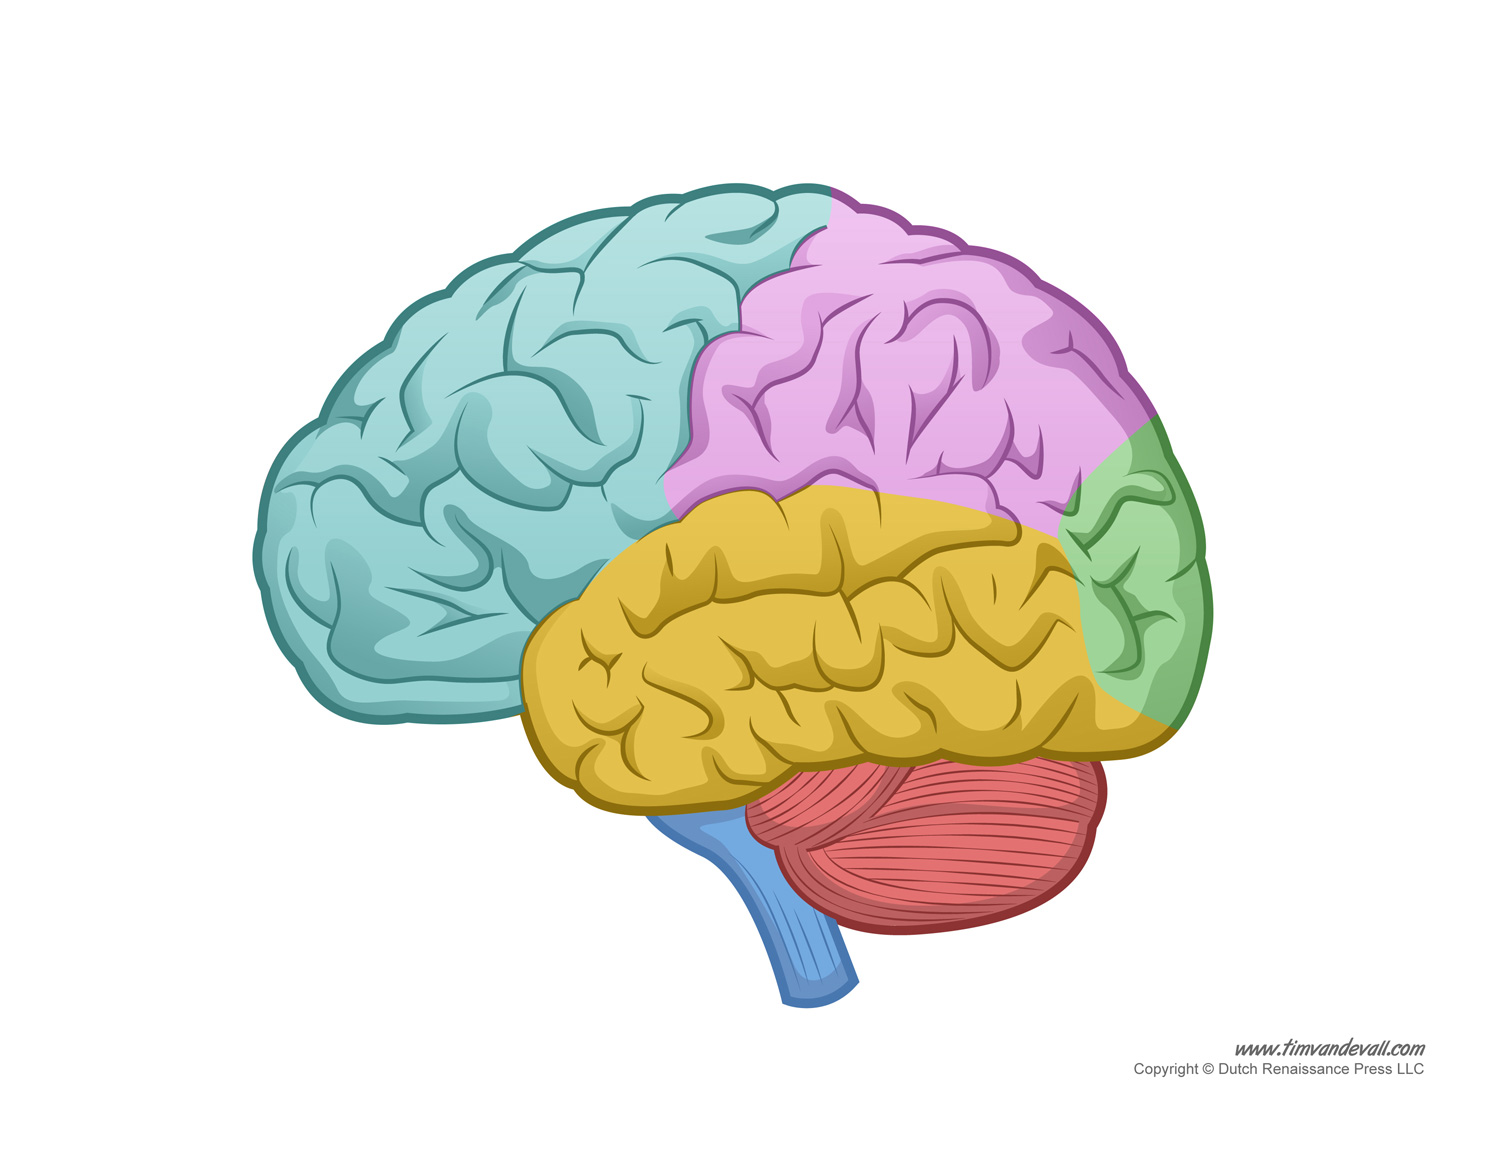 Human Brain Lobes Diagram Unlabeled - Online Schematic Diagram •